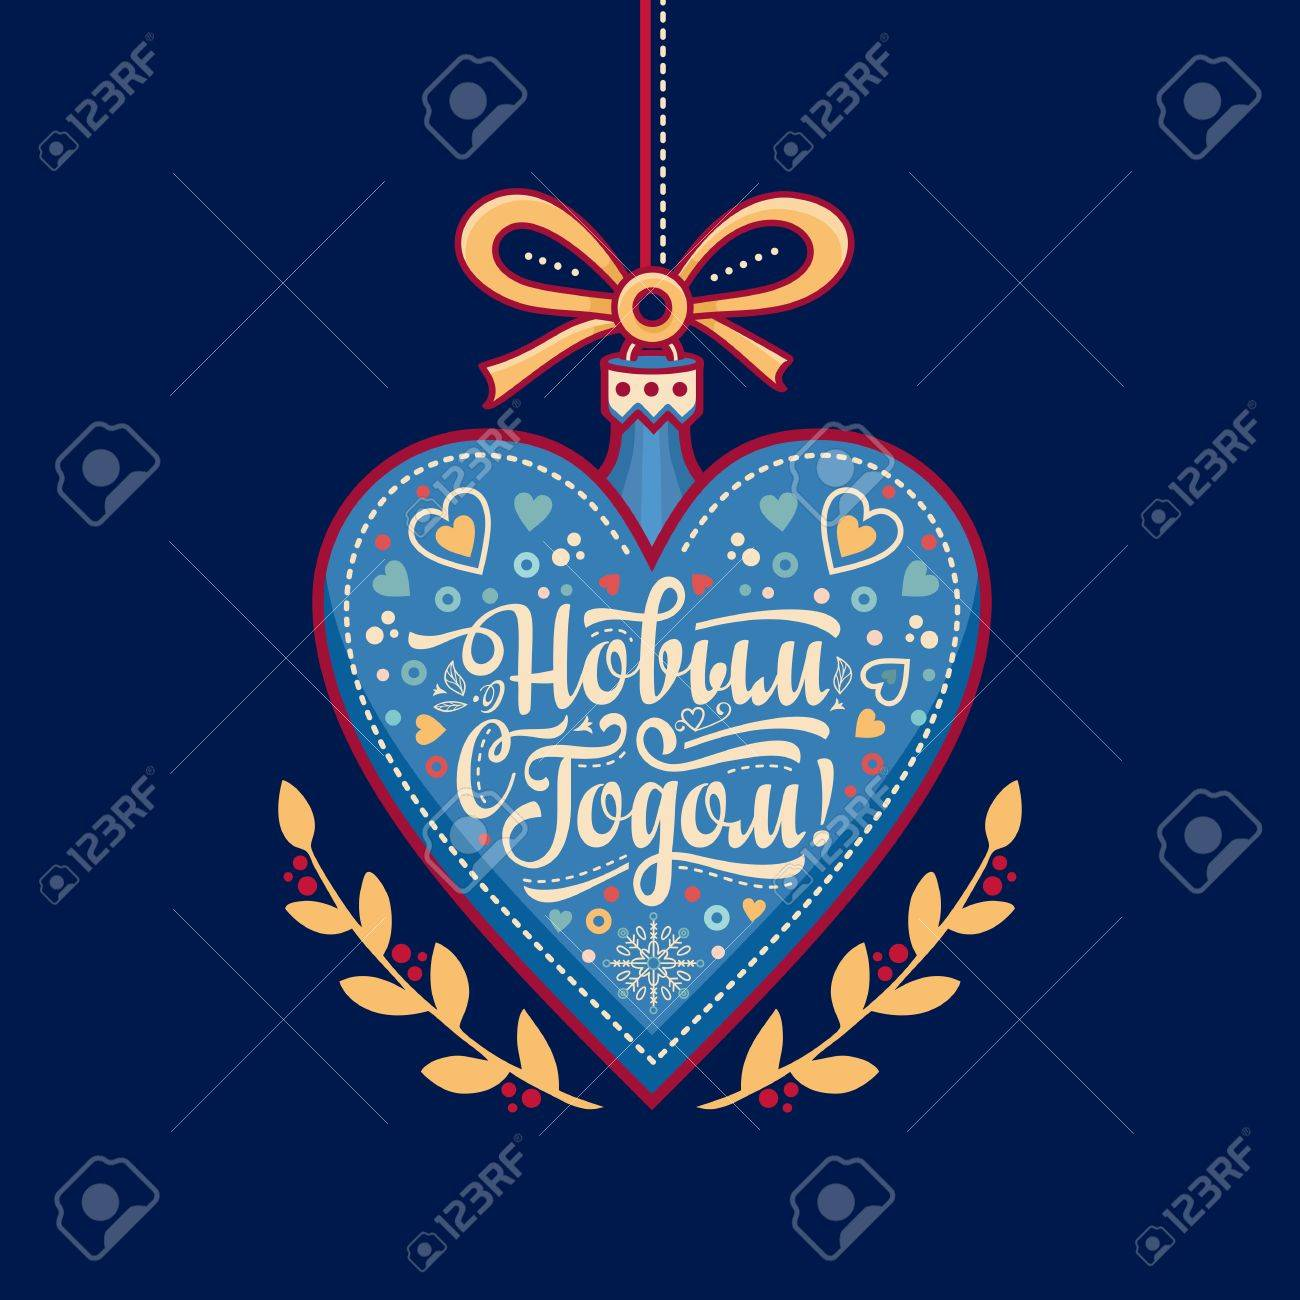 Greeting card in the form of a blue heart russian cyrillic font greeting card in the form of a blue heart russian cyrillic font translate a kristyandbryce Choice Image